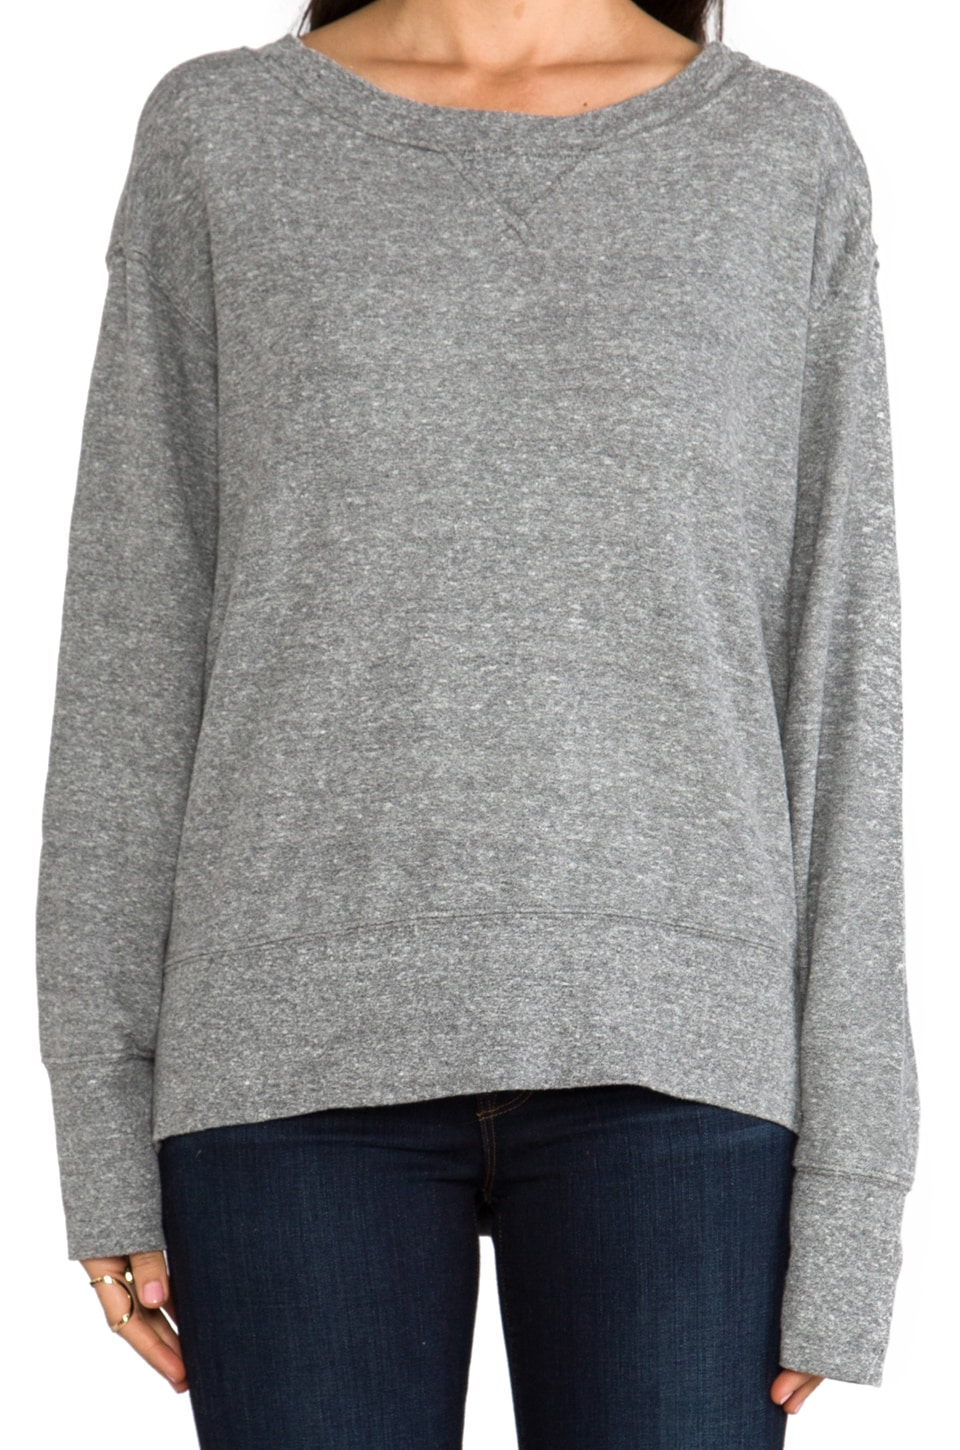 Current/Elliott Stadium Sweatshirt in Heather Grey